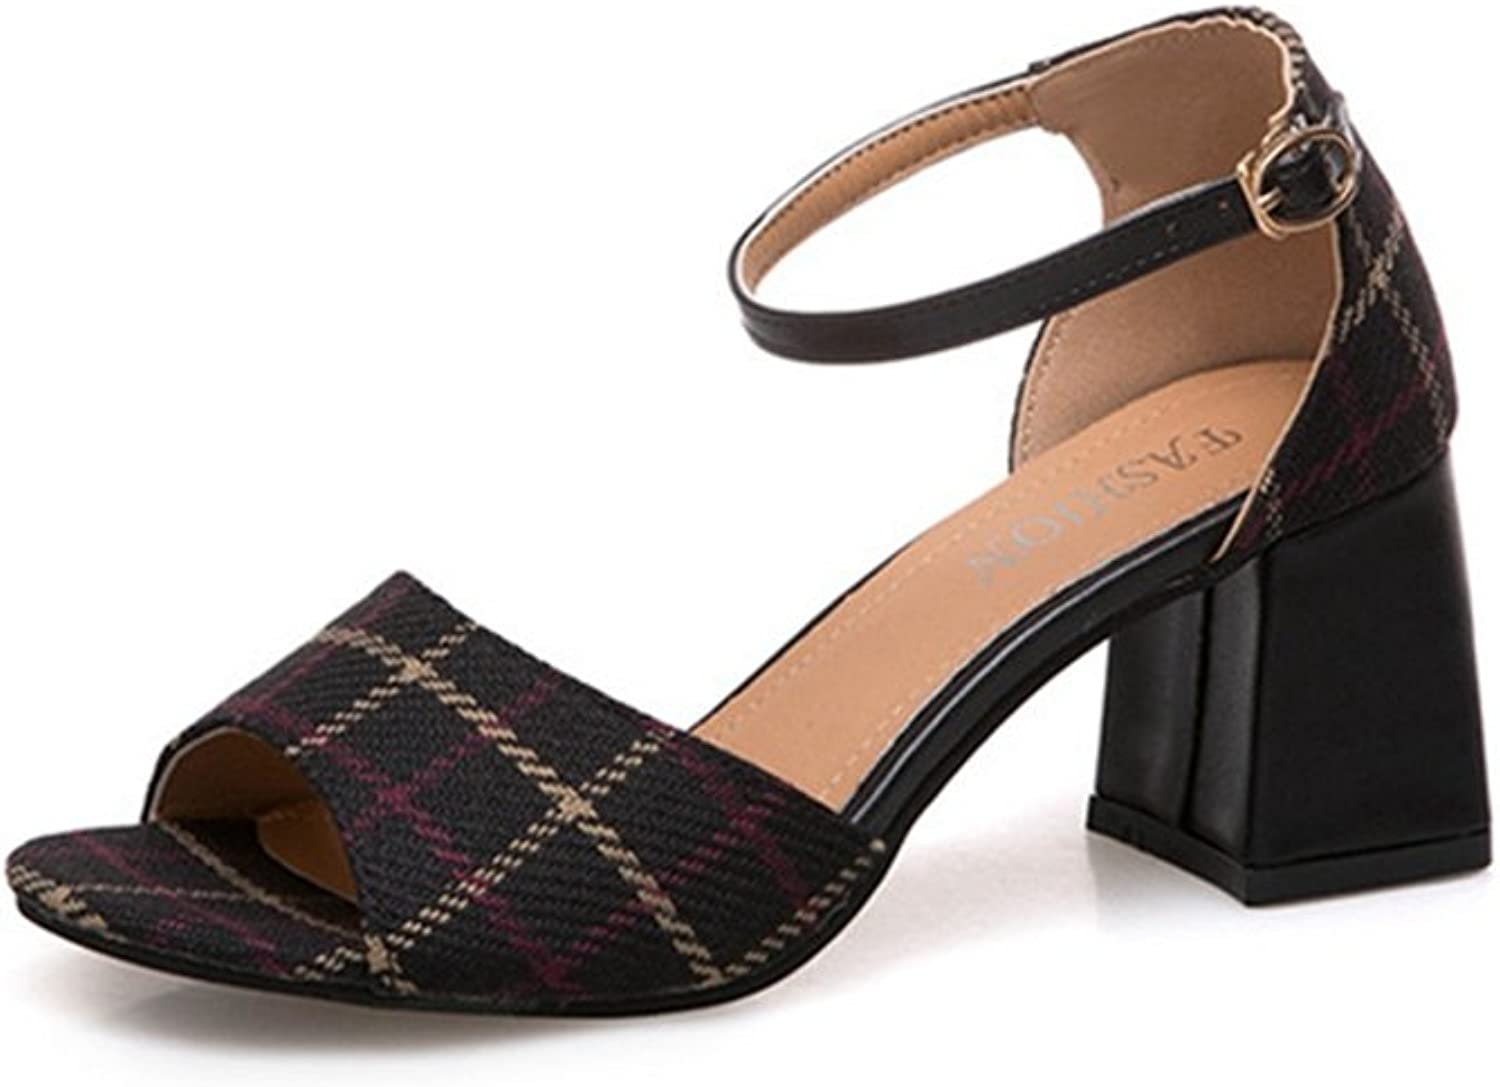 Zarbrina Womens Block Heel Sandals Ladies Sexy Fabric Plaid Open Toe Adjustable Ankle Strap Dress shoes